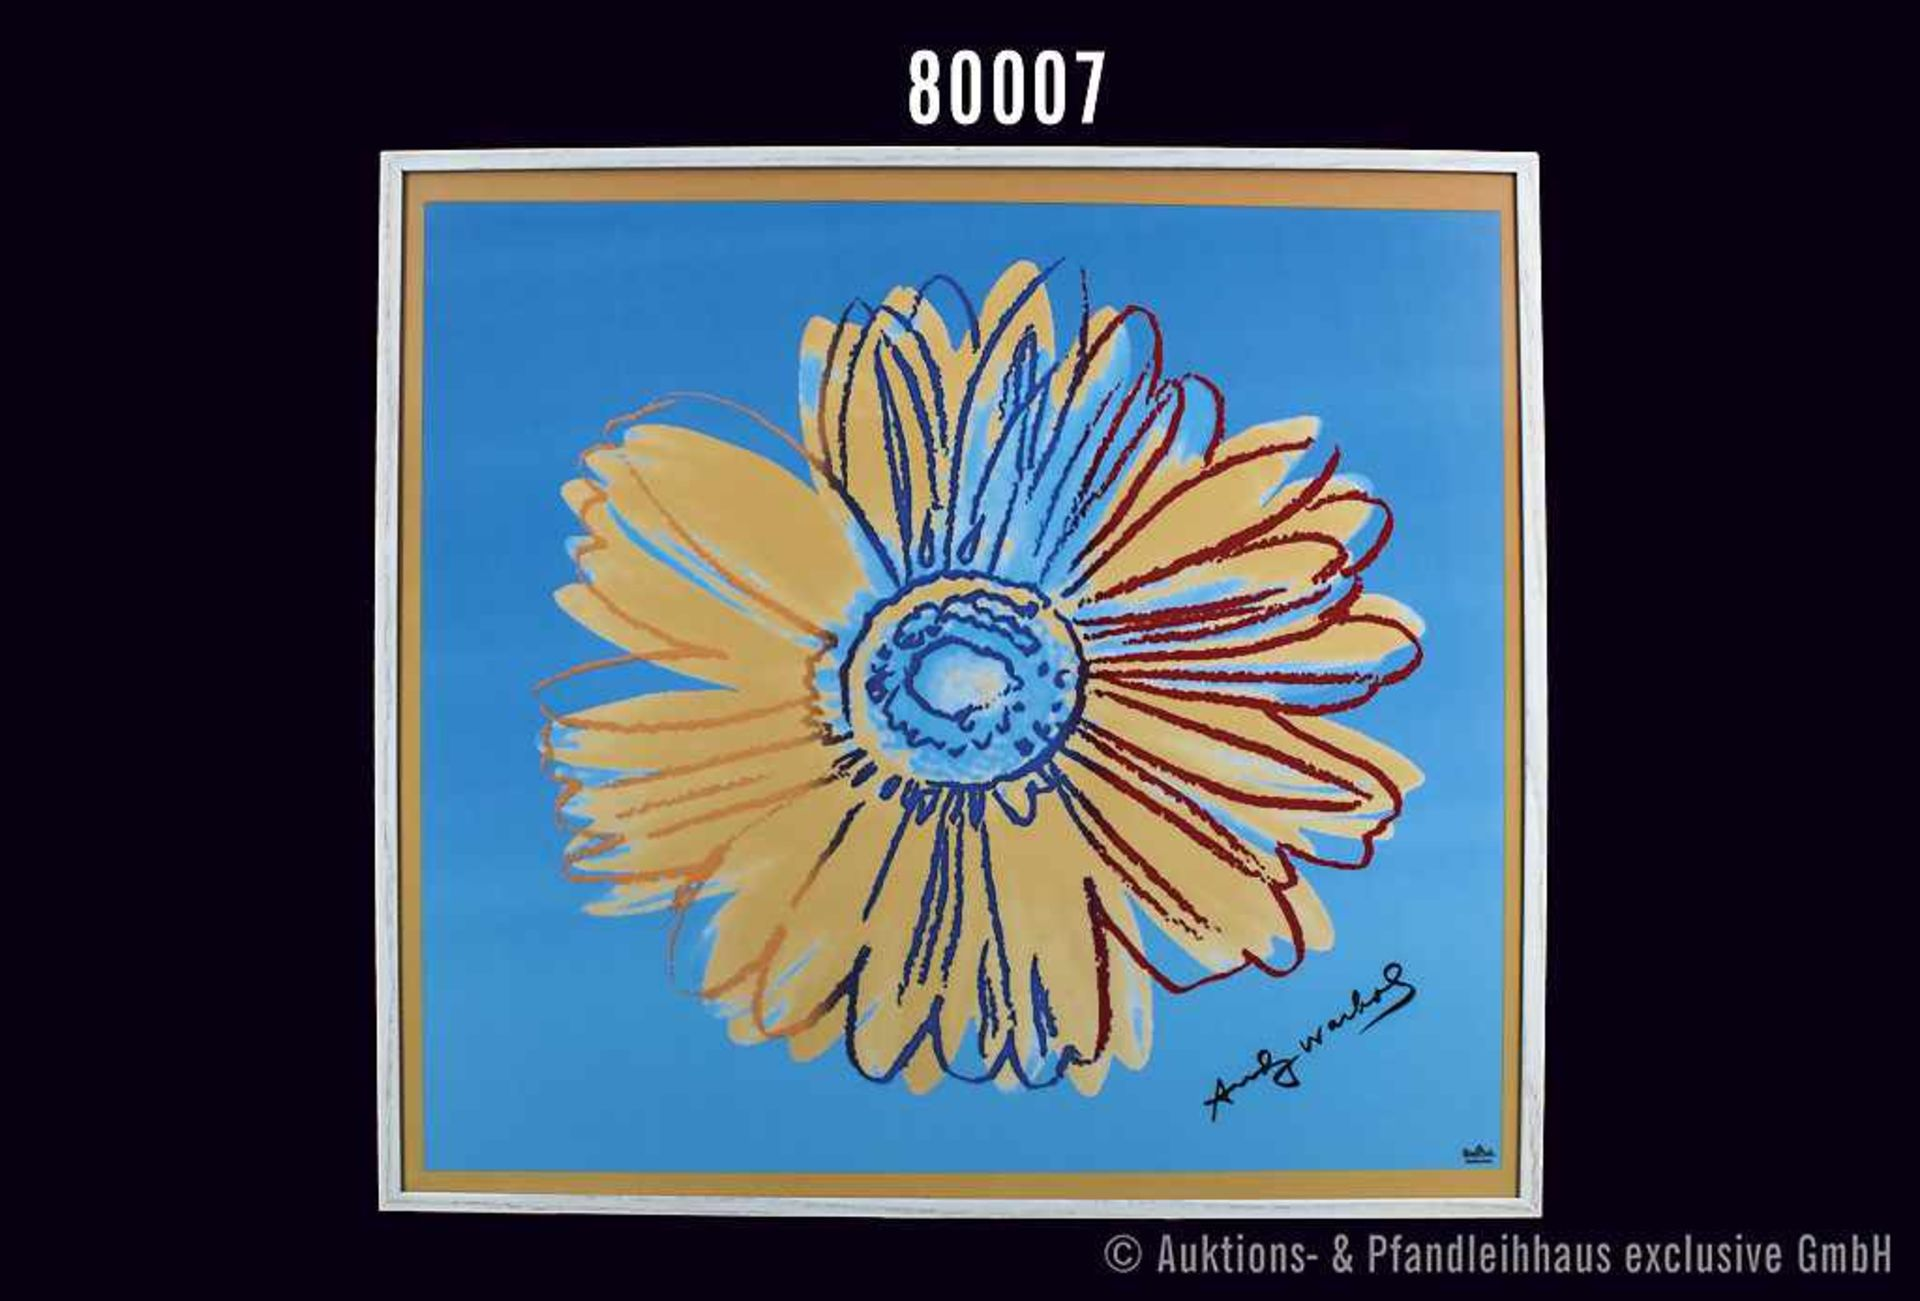 Rosenthal Porzellan, Wandbild Andy Warhol-Collection, Dekor Daisies orange-türkis, große bunte